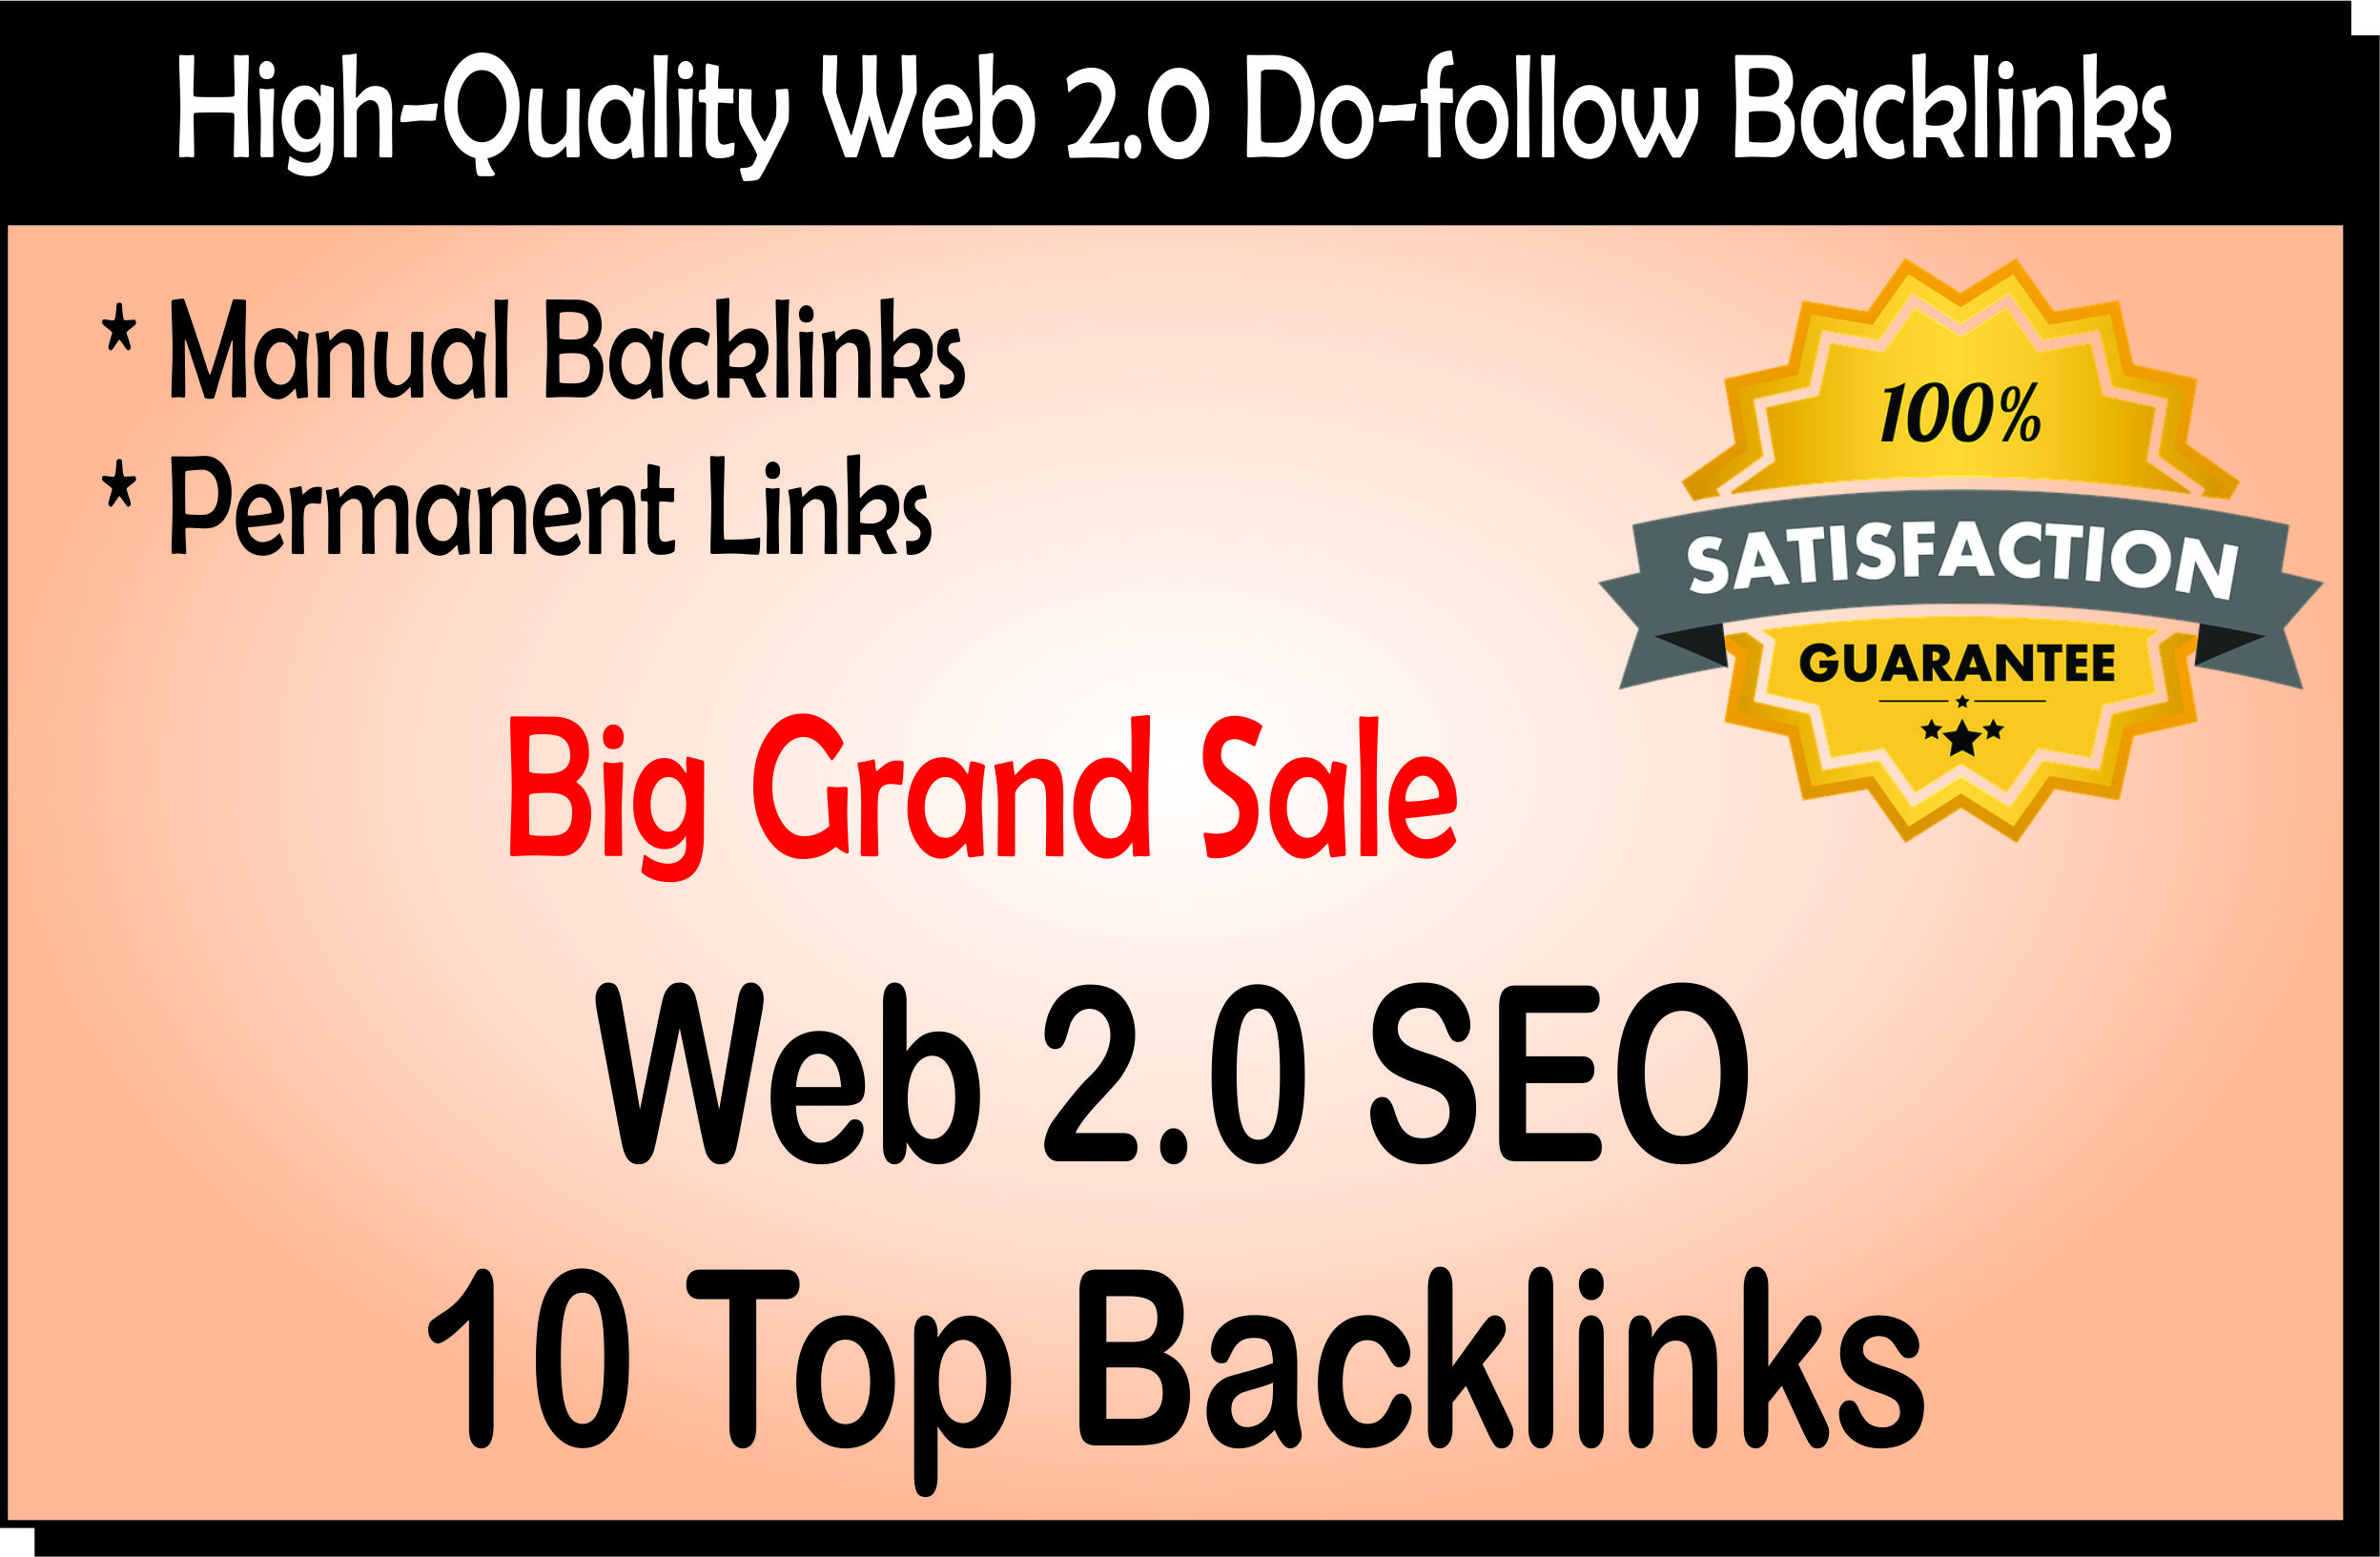 You Will Get 10 High Quality Web 2.0 Backlinks